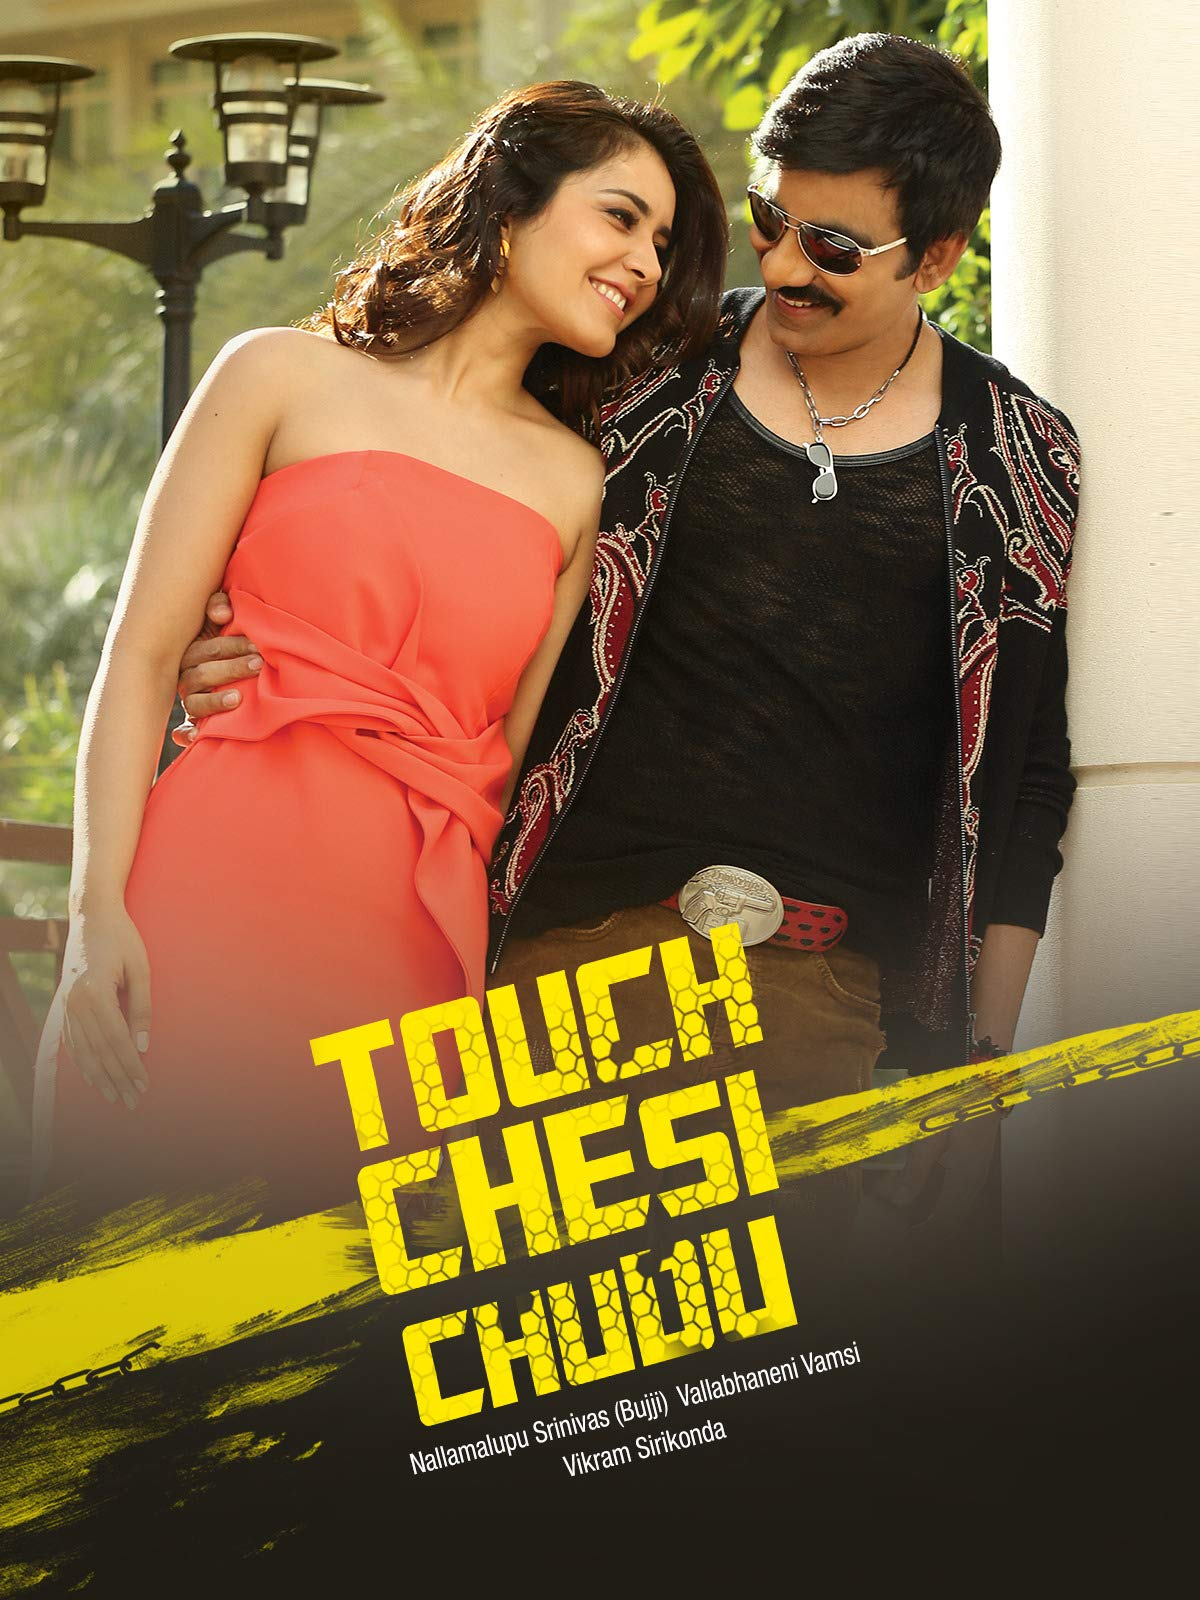 Touch Chesi Chudu (2020) Hindi ORG Dual Audio UNCUT 720p BluRay 800MB Download